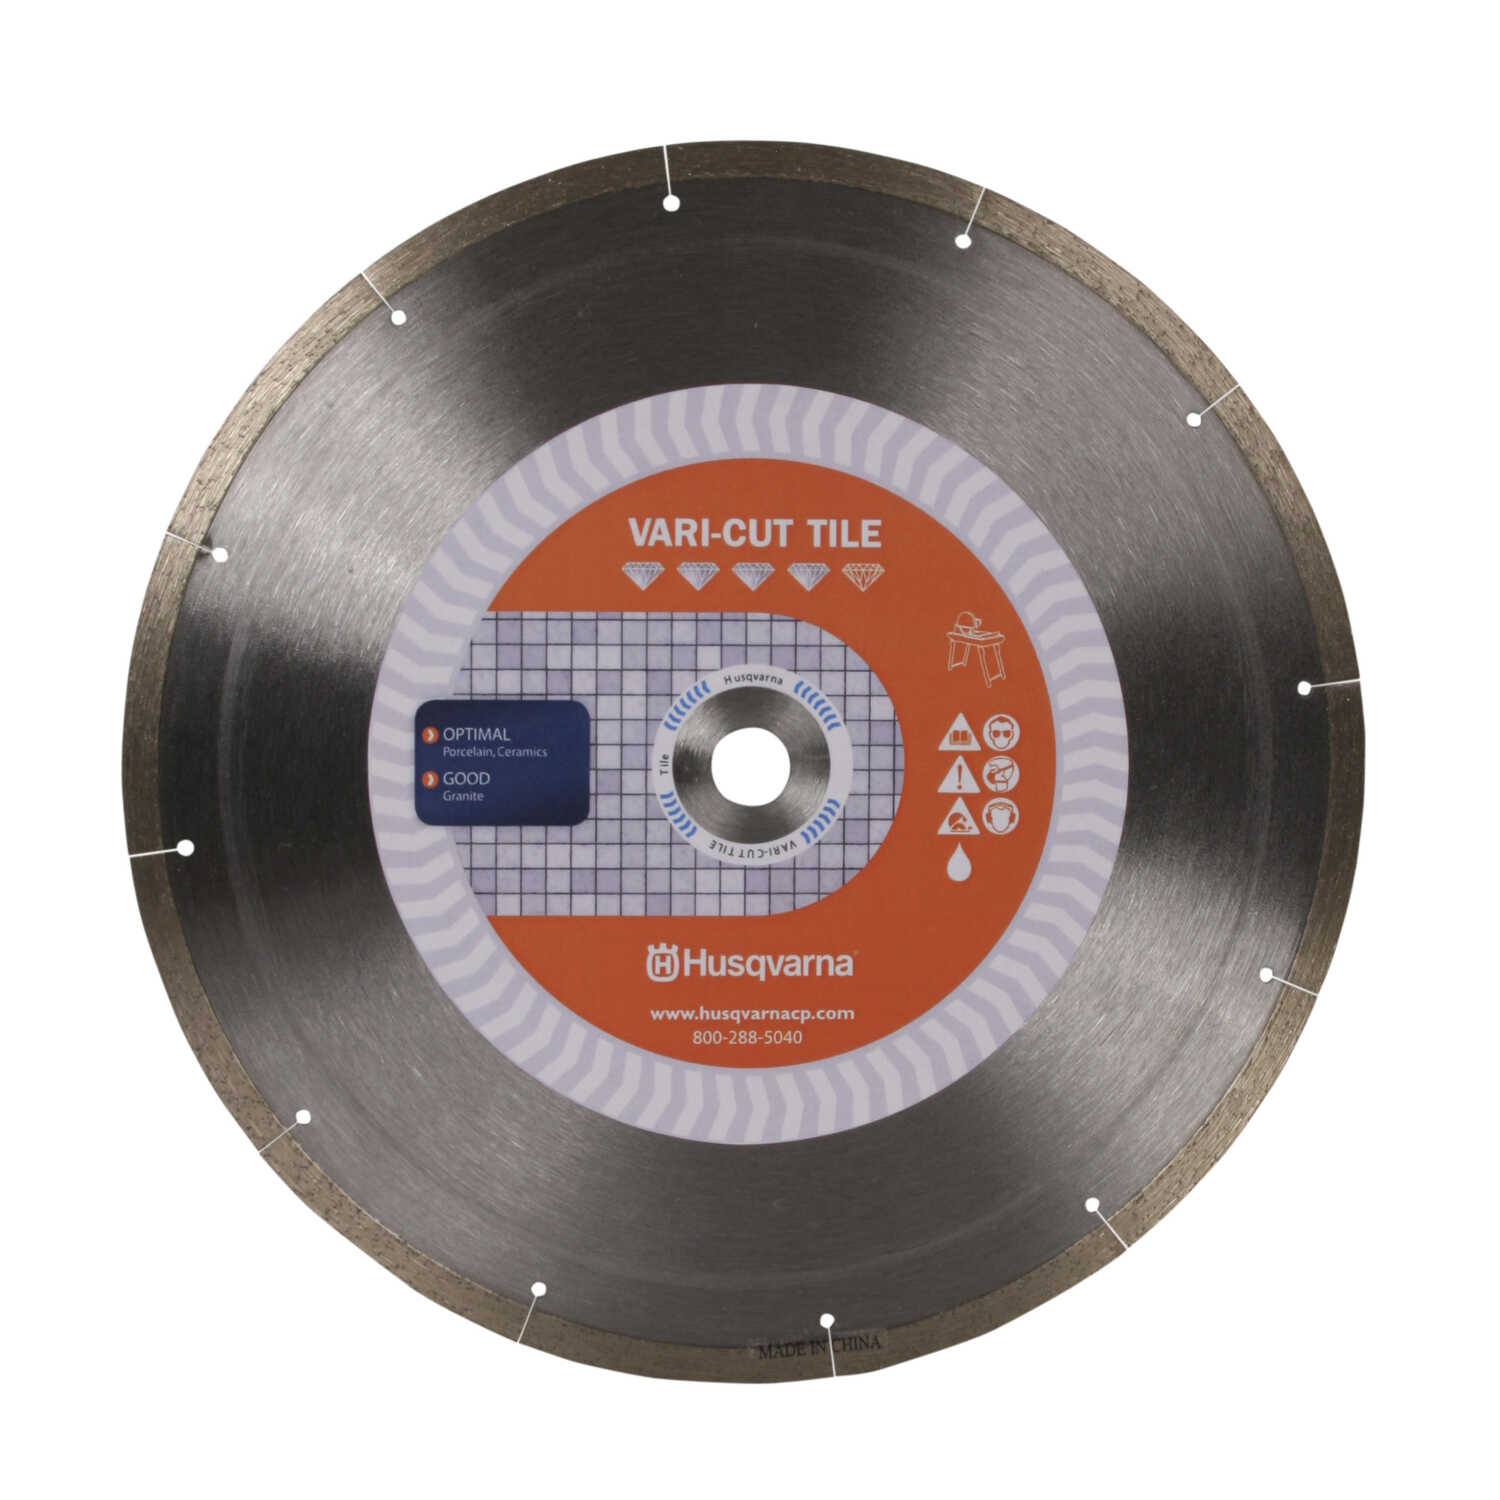 Husqvarna  10  Vari-Tile  Diamond Saw Blade  1 pk